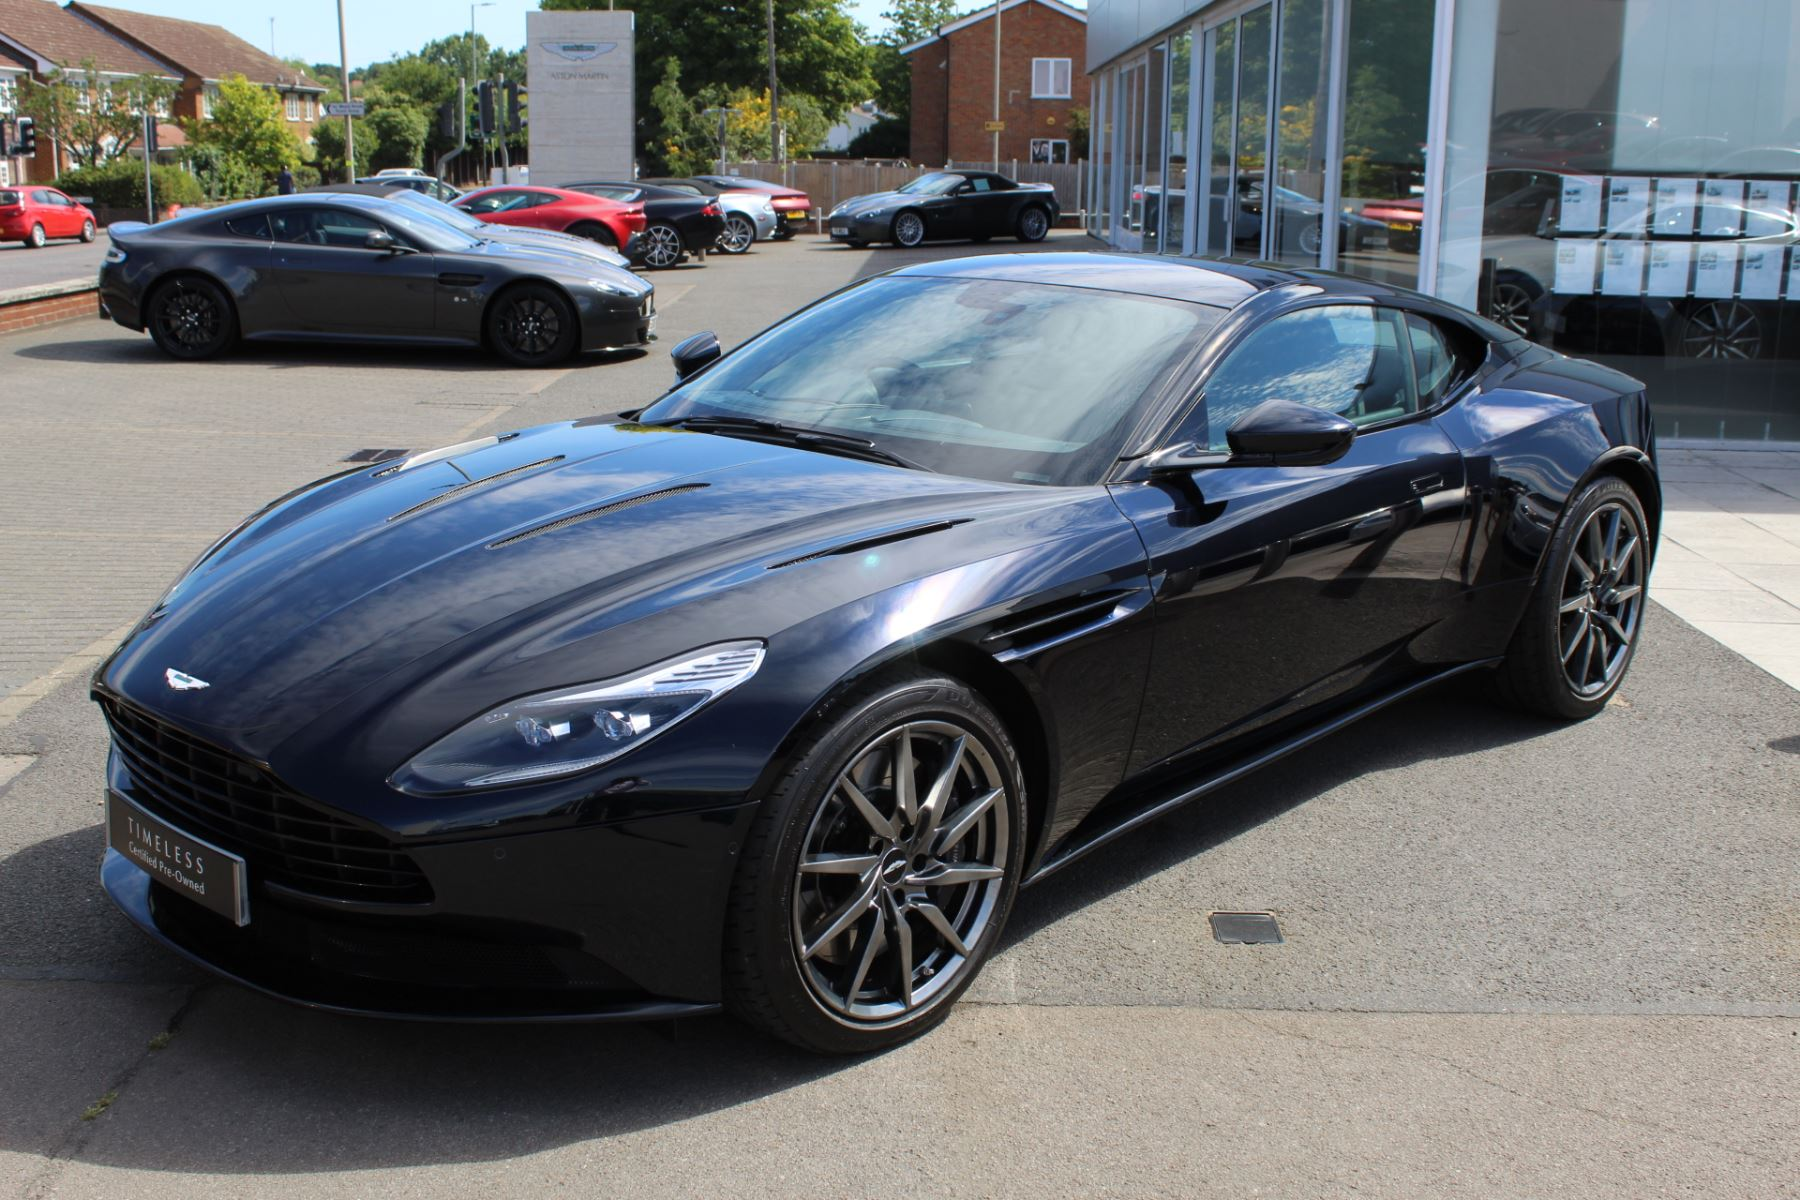 Aston Martin DB11 V12 2dr Touchtronic image 4